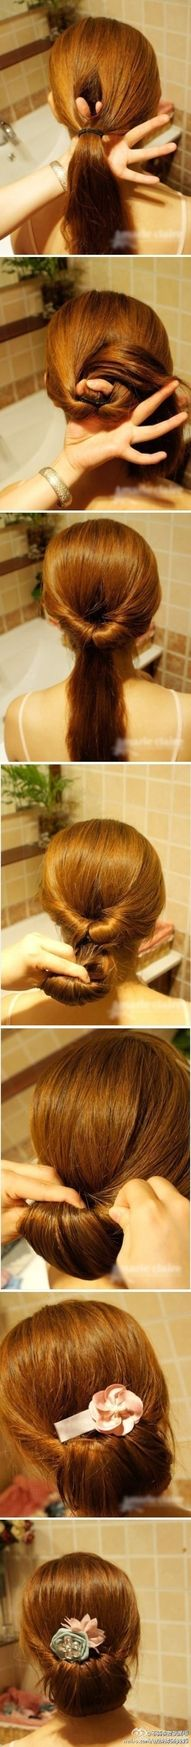 Cool want one! Thats easy! I can never get my hair to look good in a bun... Im going to do try it right now! ;)